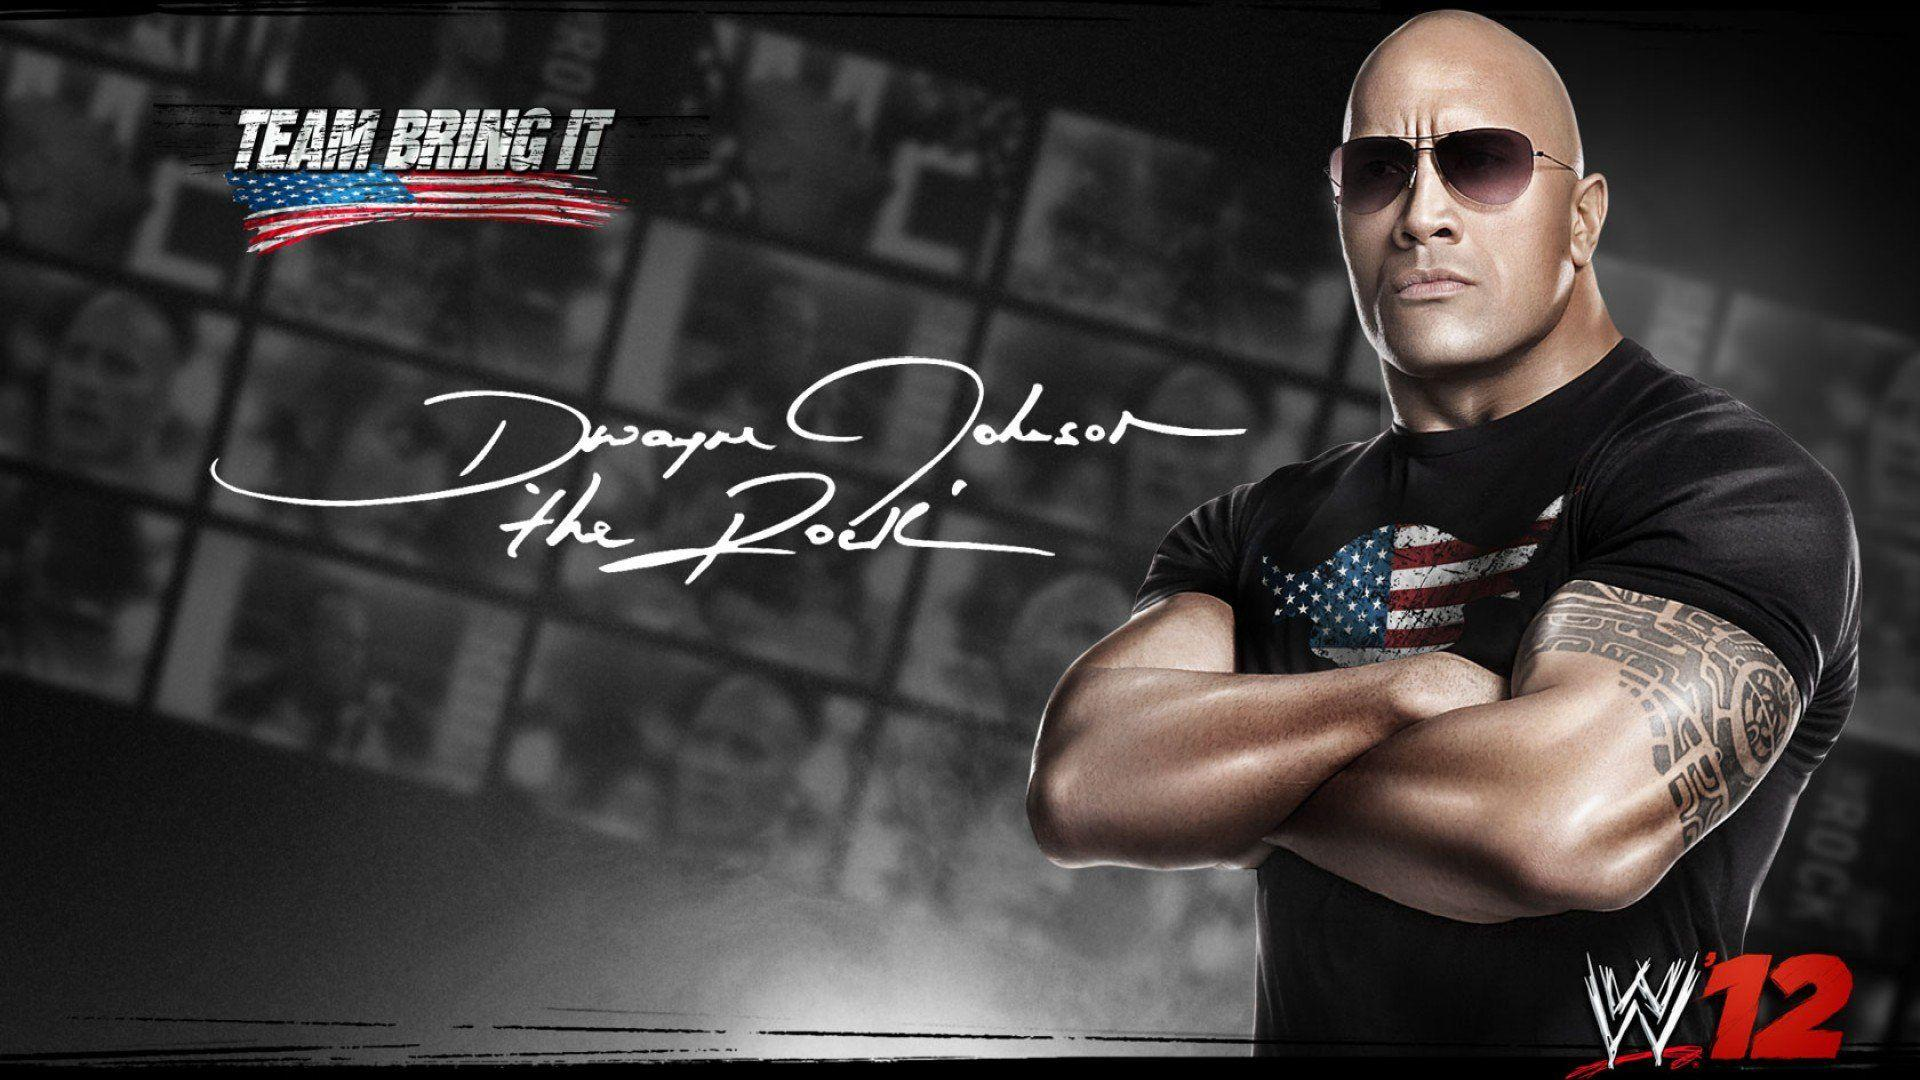 wwe the rock 1080p hd wallpapers new wallpaper cave wwe the rock 1080p hd wallpapers new